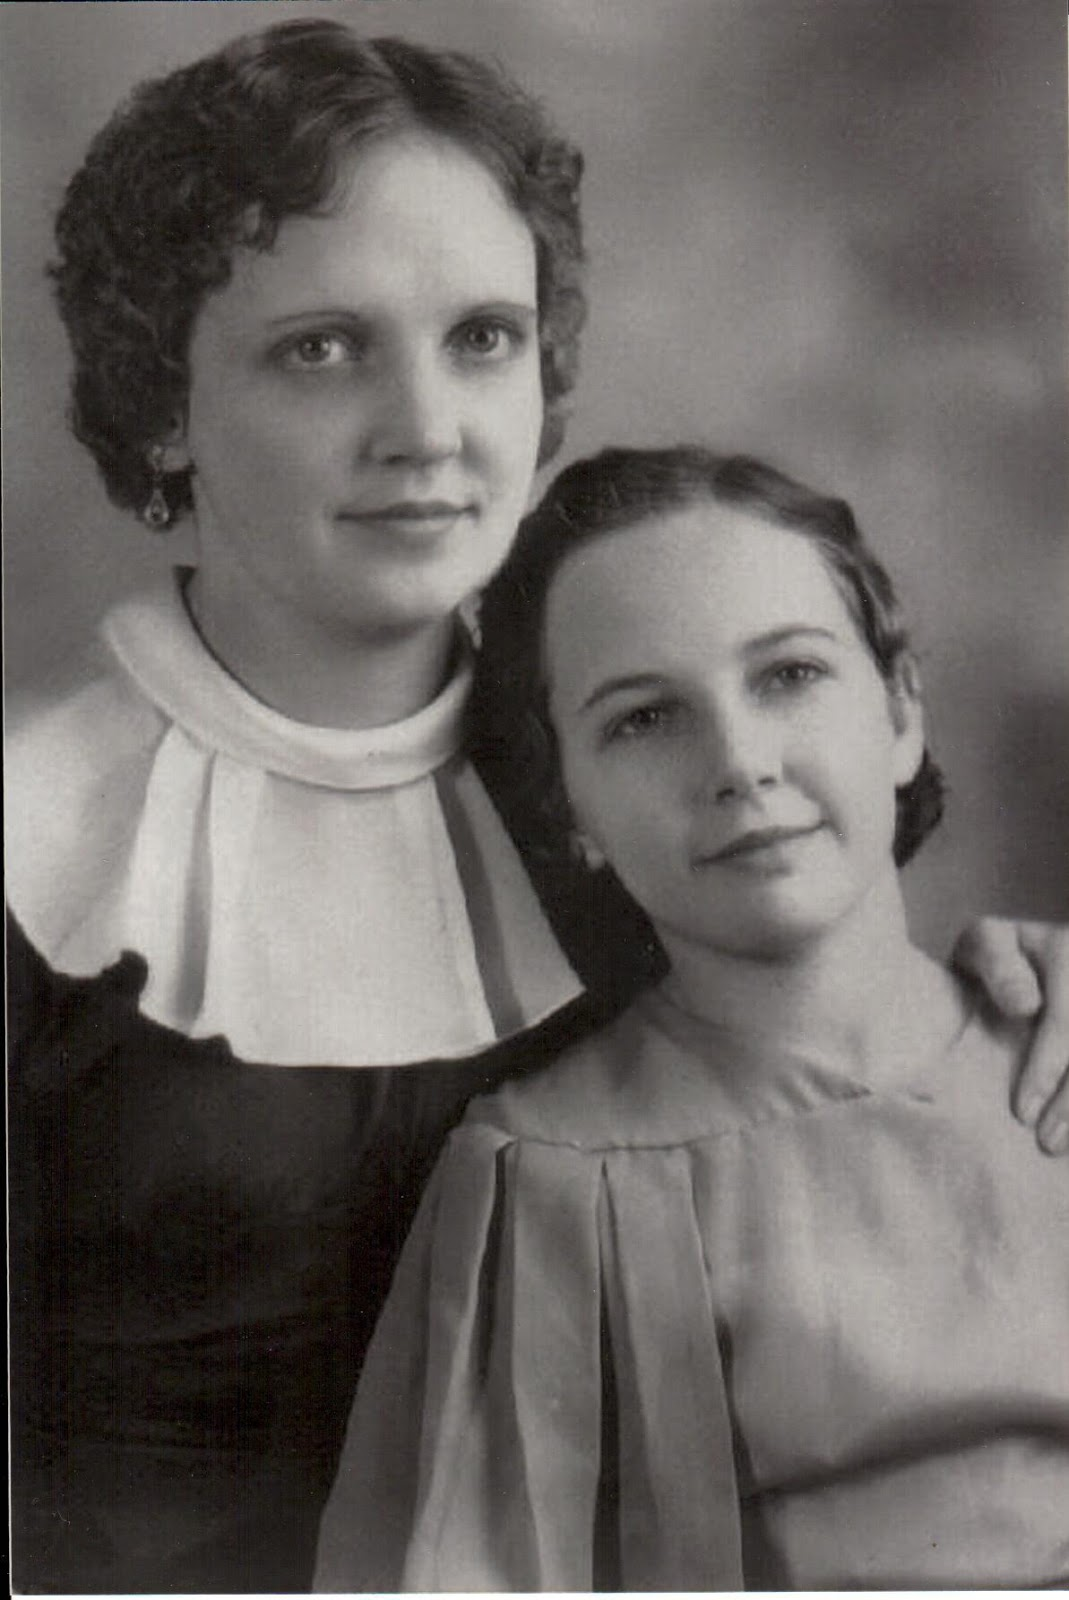 about 1935